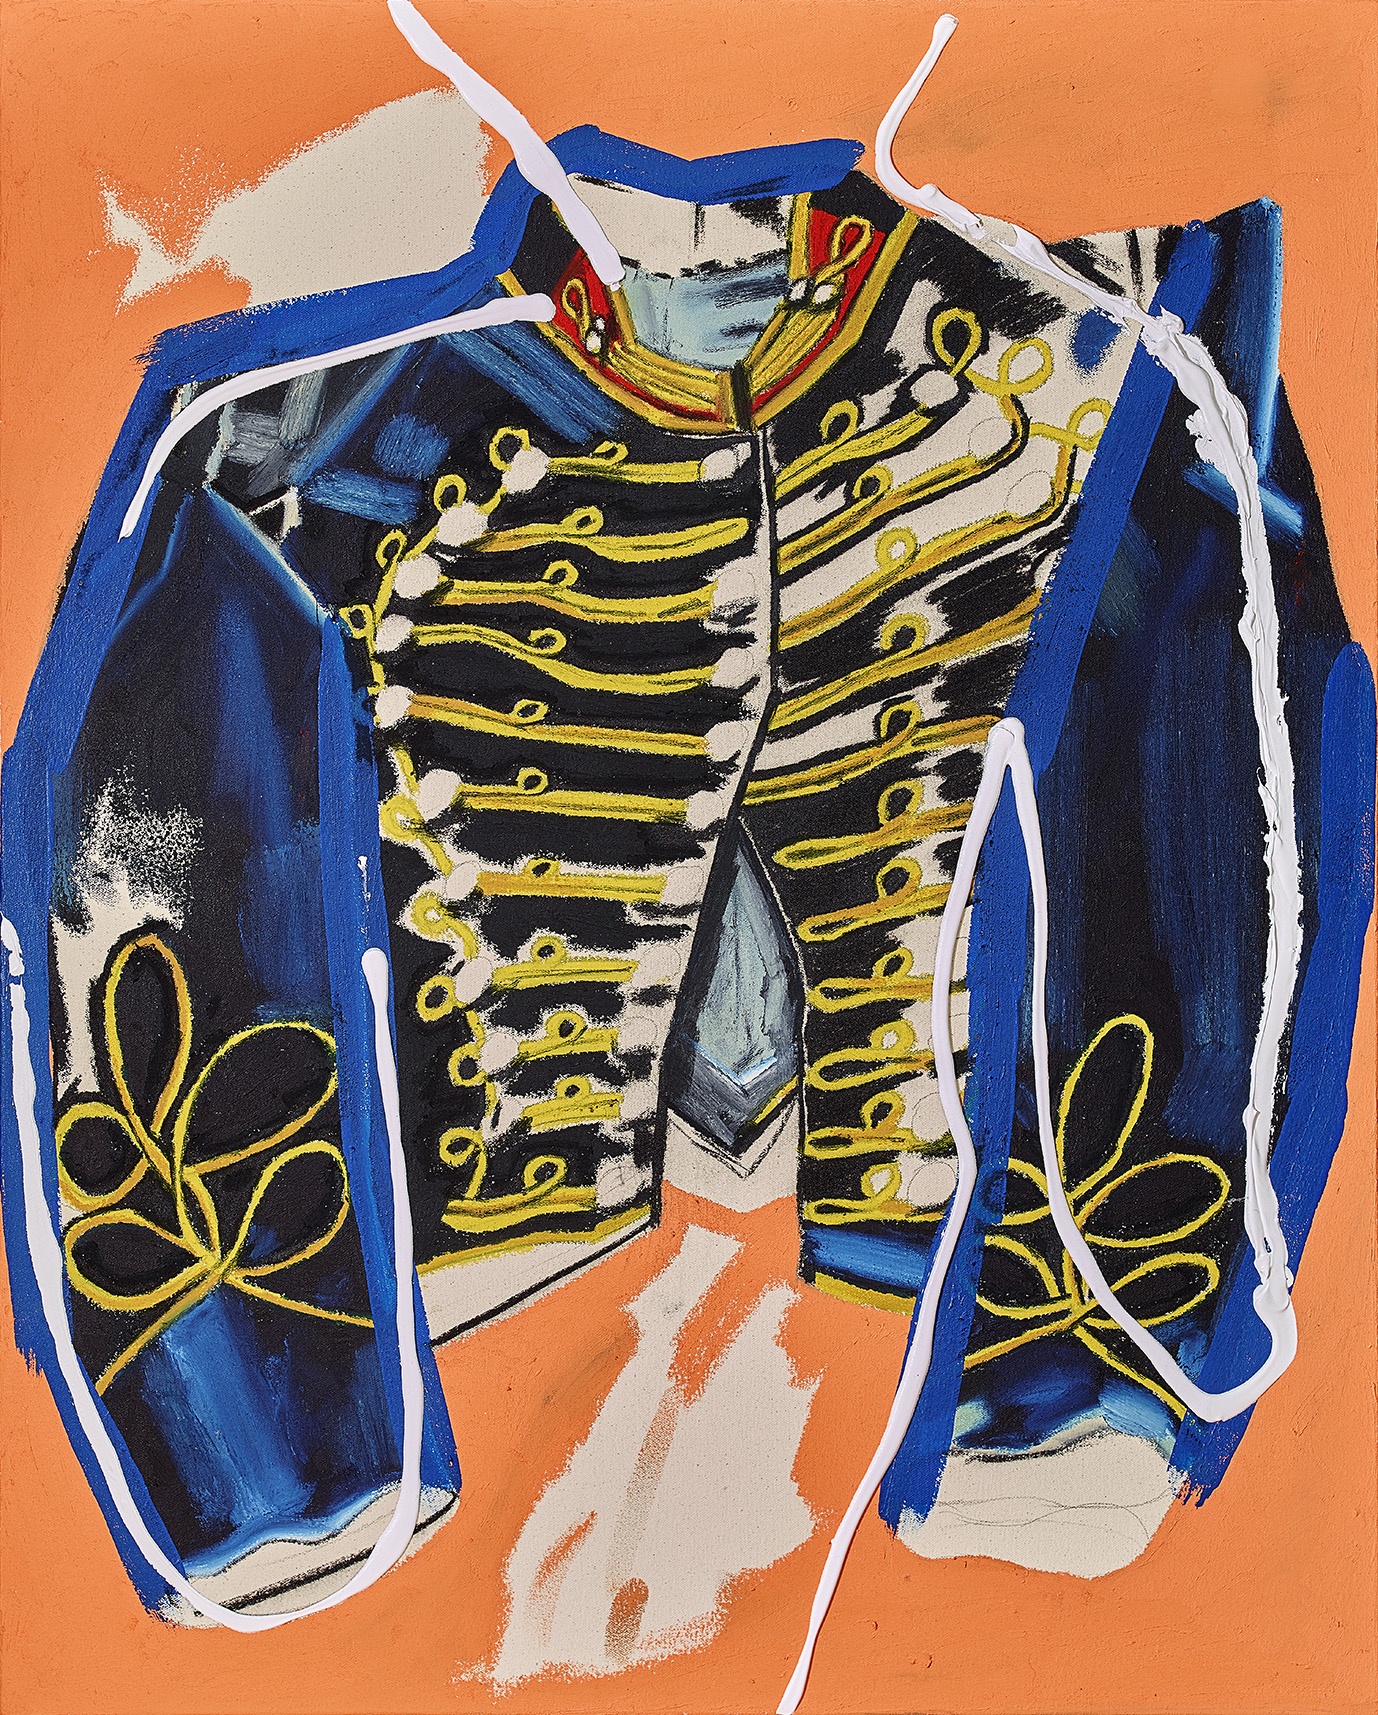 Cavalry shell jacket 36 x 29 inches oil stick, acrylic and charcoal on canvas 2018